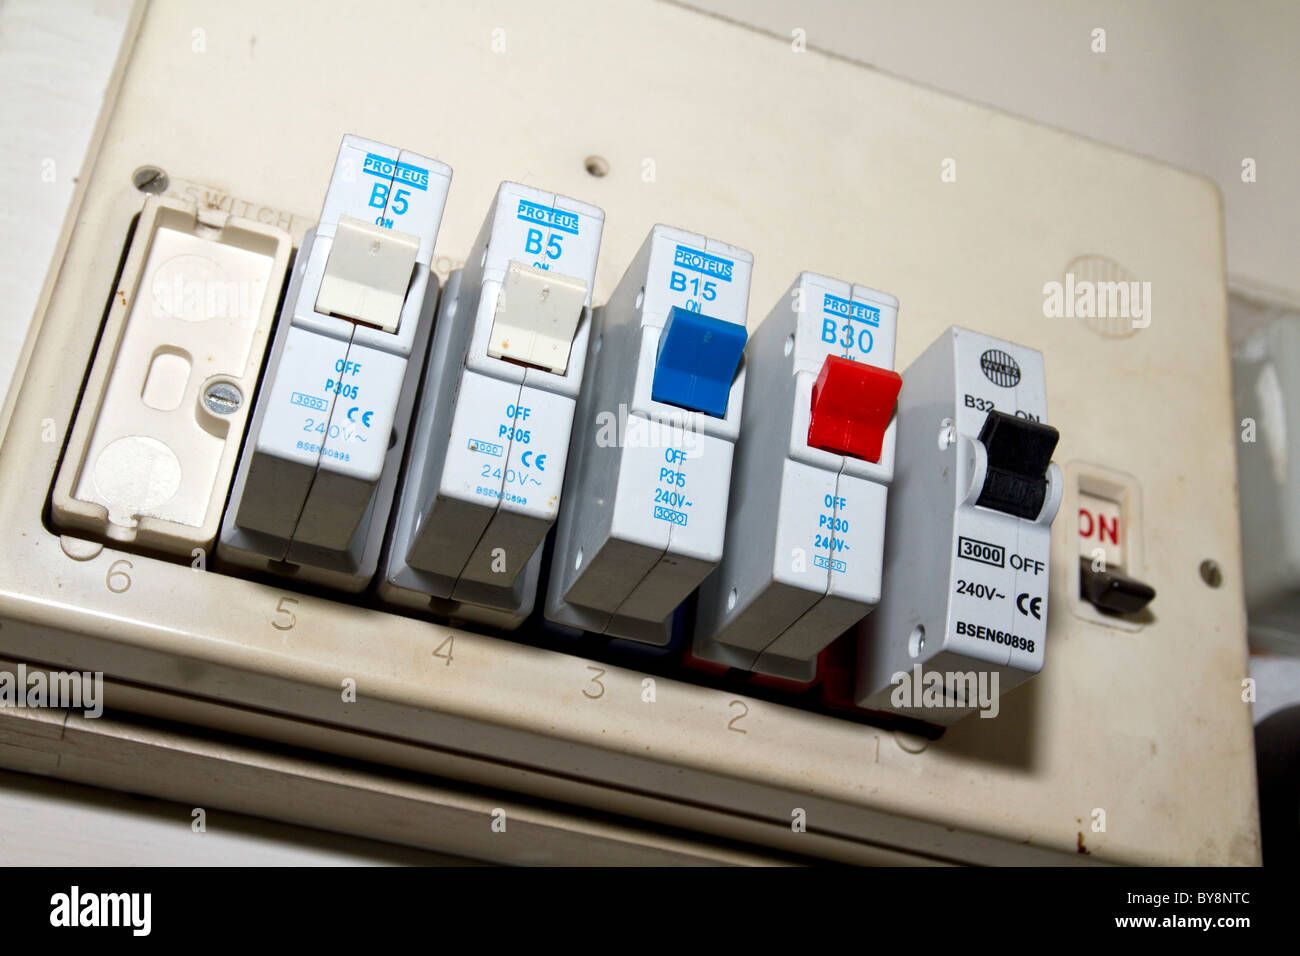 uk old electric fuse box in a london house BY8NTC uk old electric fuse box in a london house stock photo, royalty old breaker box fuses at bakdesigns.co